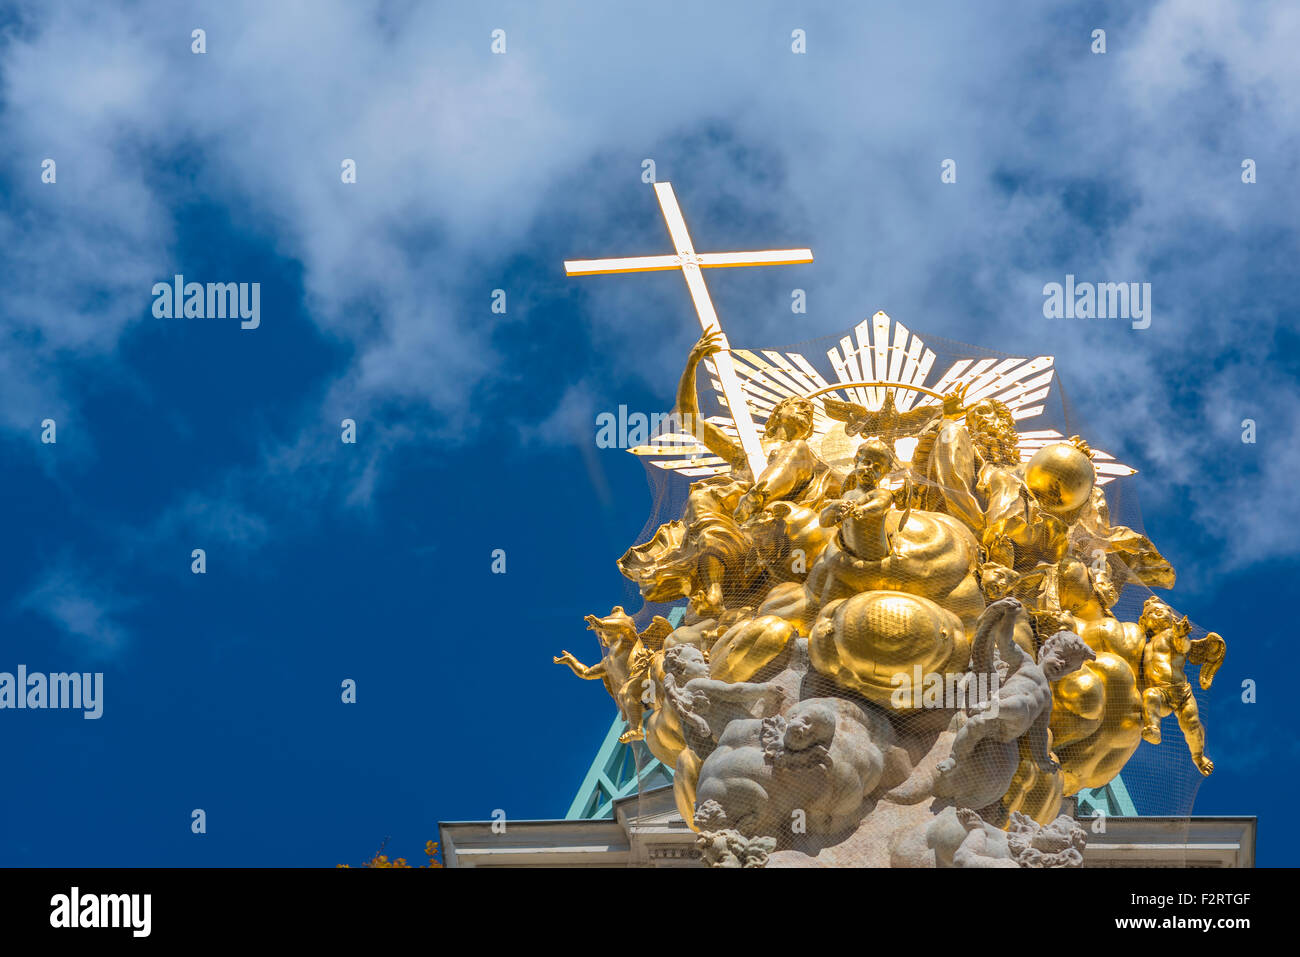 Pestsaule Vienna, view of the Baroque top of the Pestsaule column built in the center of Vienna to commemorate the Stock Photo